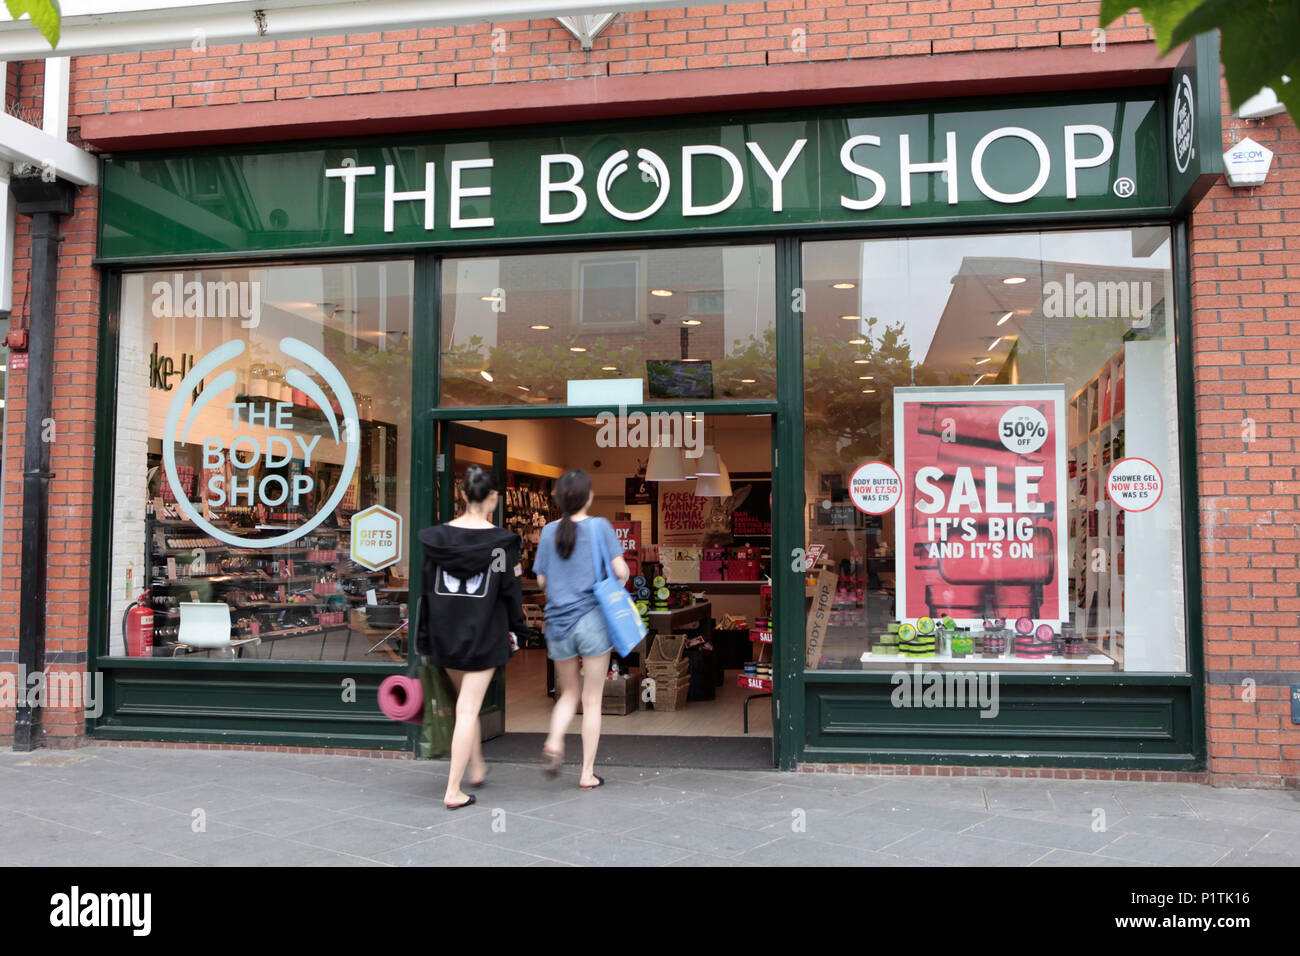 exterior view of THE BODY SHOP, with two young women entering. Shops and people shopping in Harrow, middlesex, London, UK - Stock Image